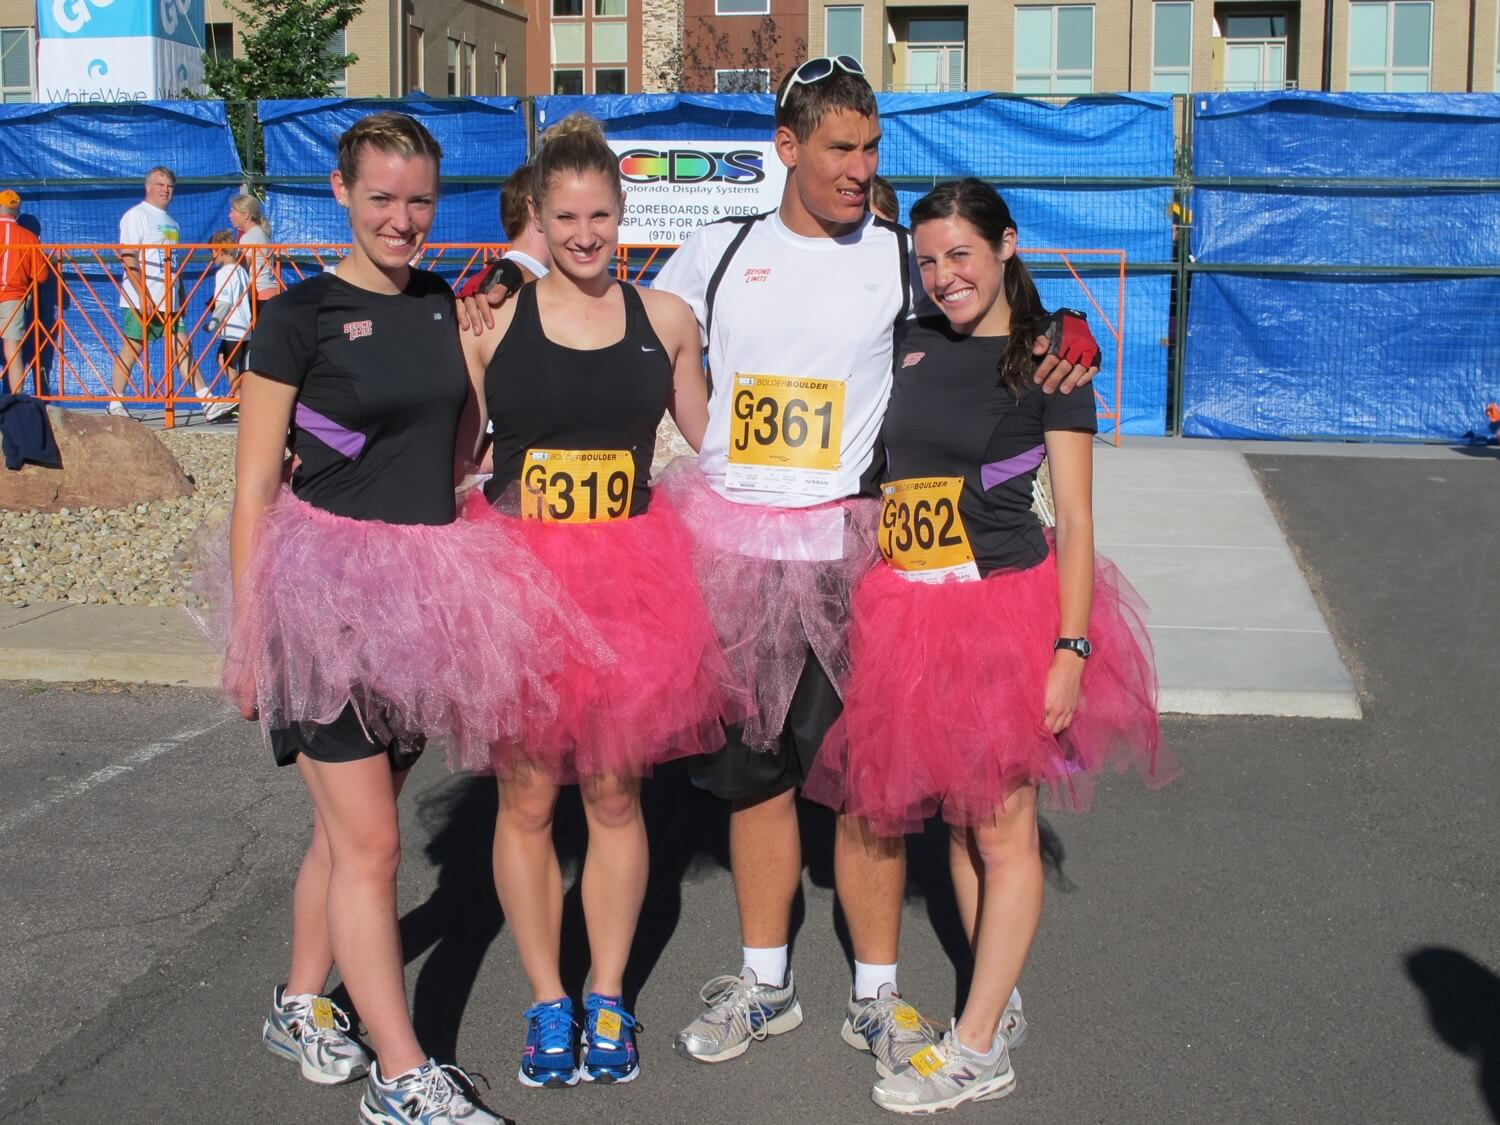 ian and his friends in pink tutus for a race